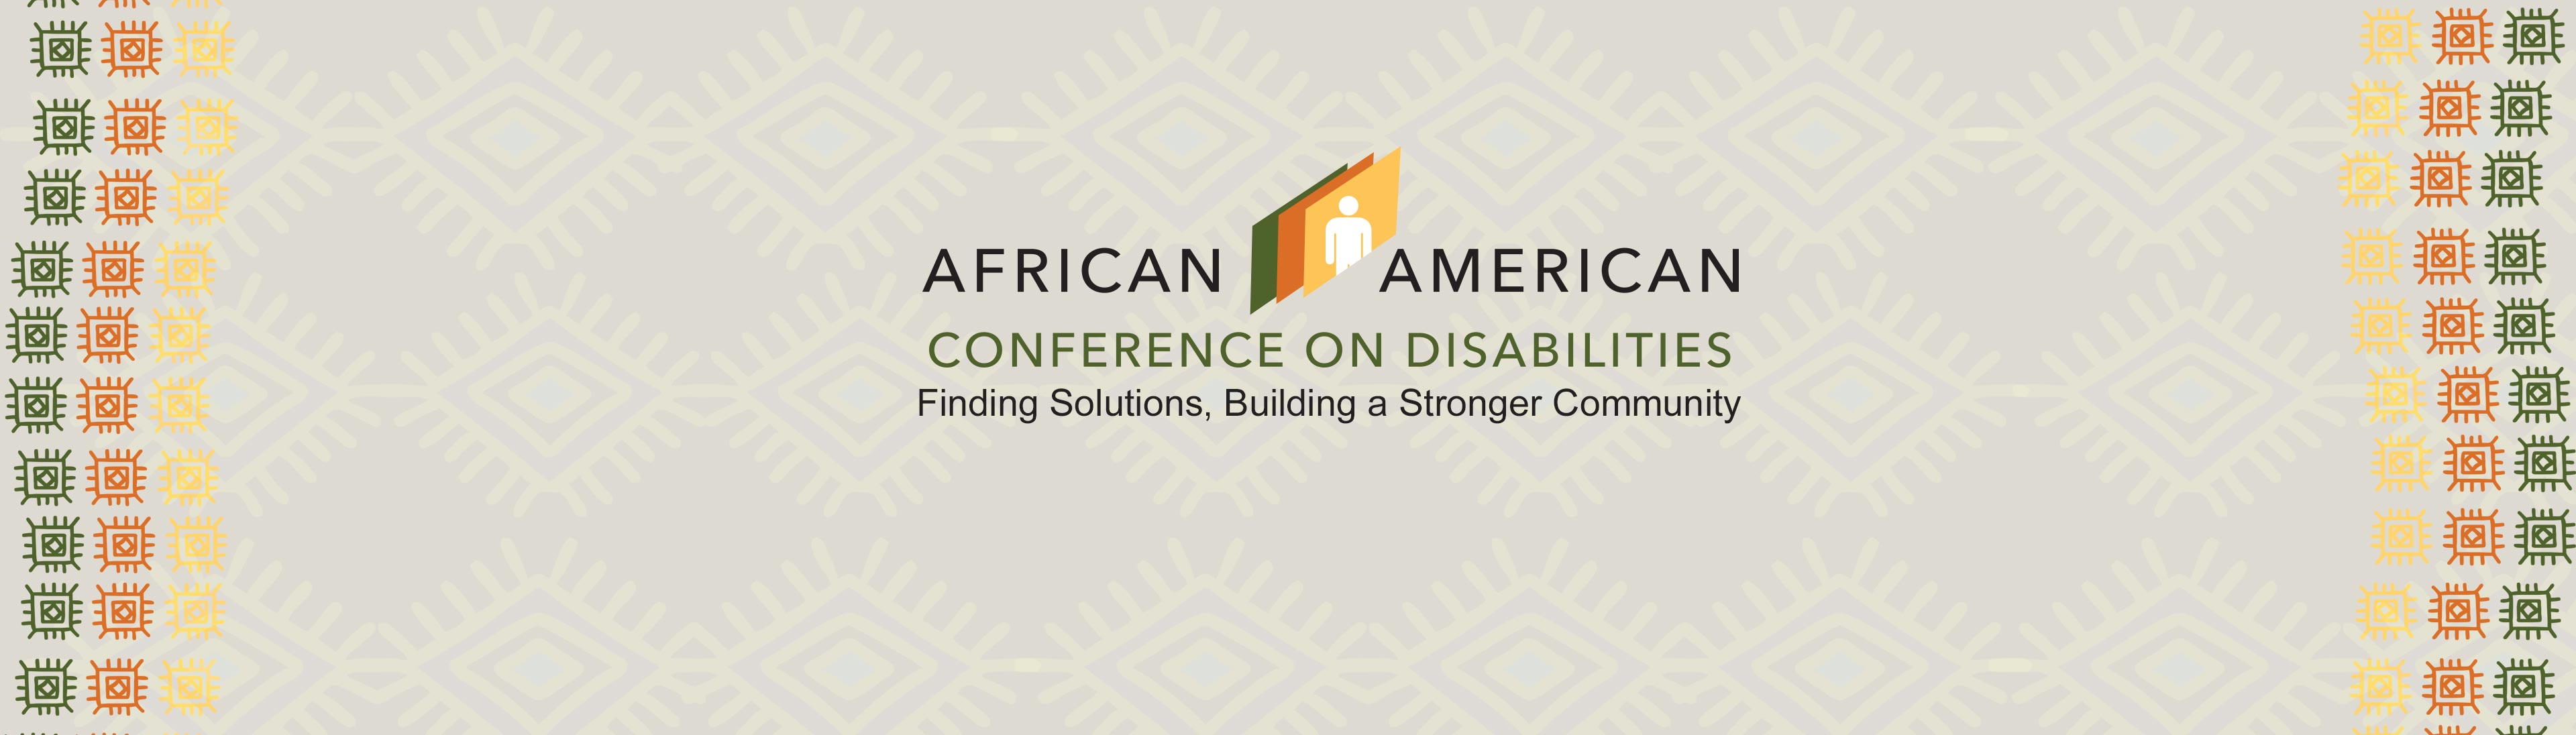 African American Conference on Disabilities, Finding Solutions, Building a Stronger Community